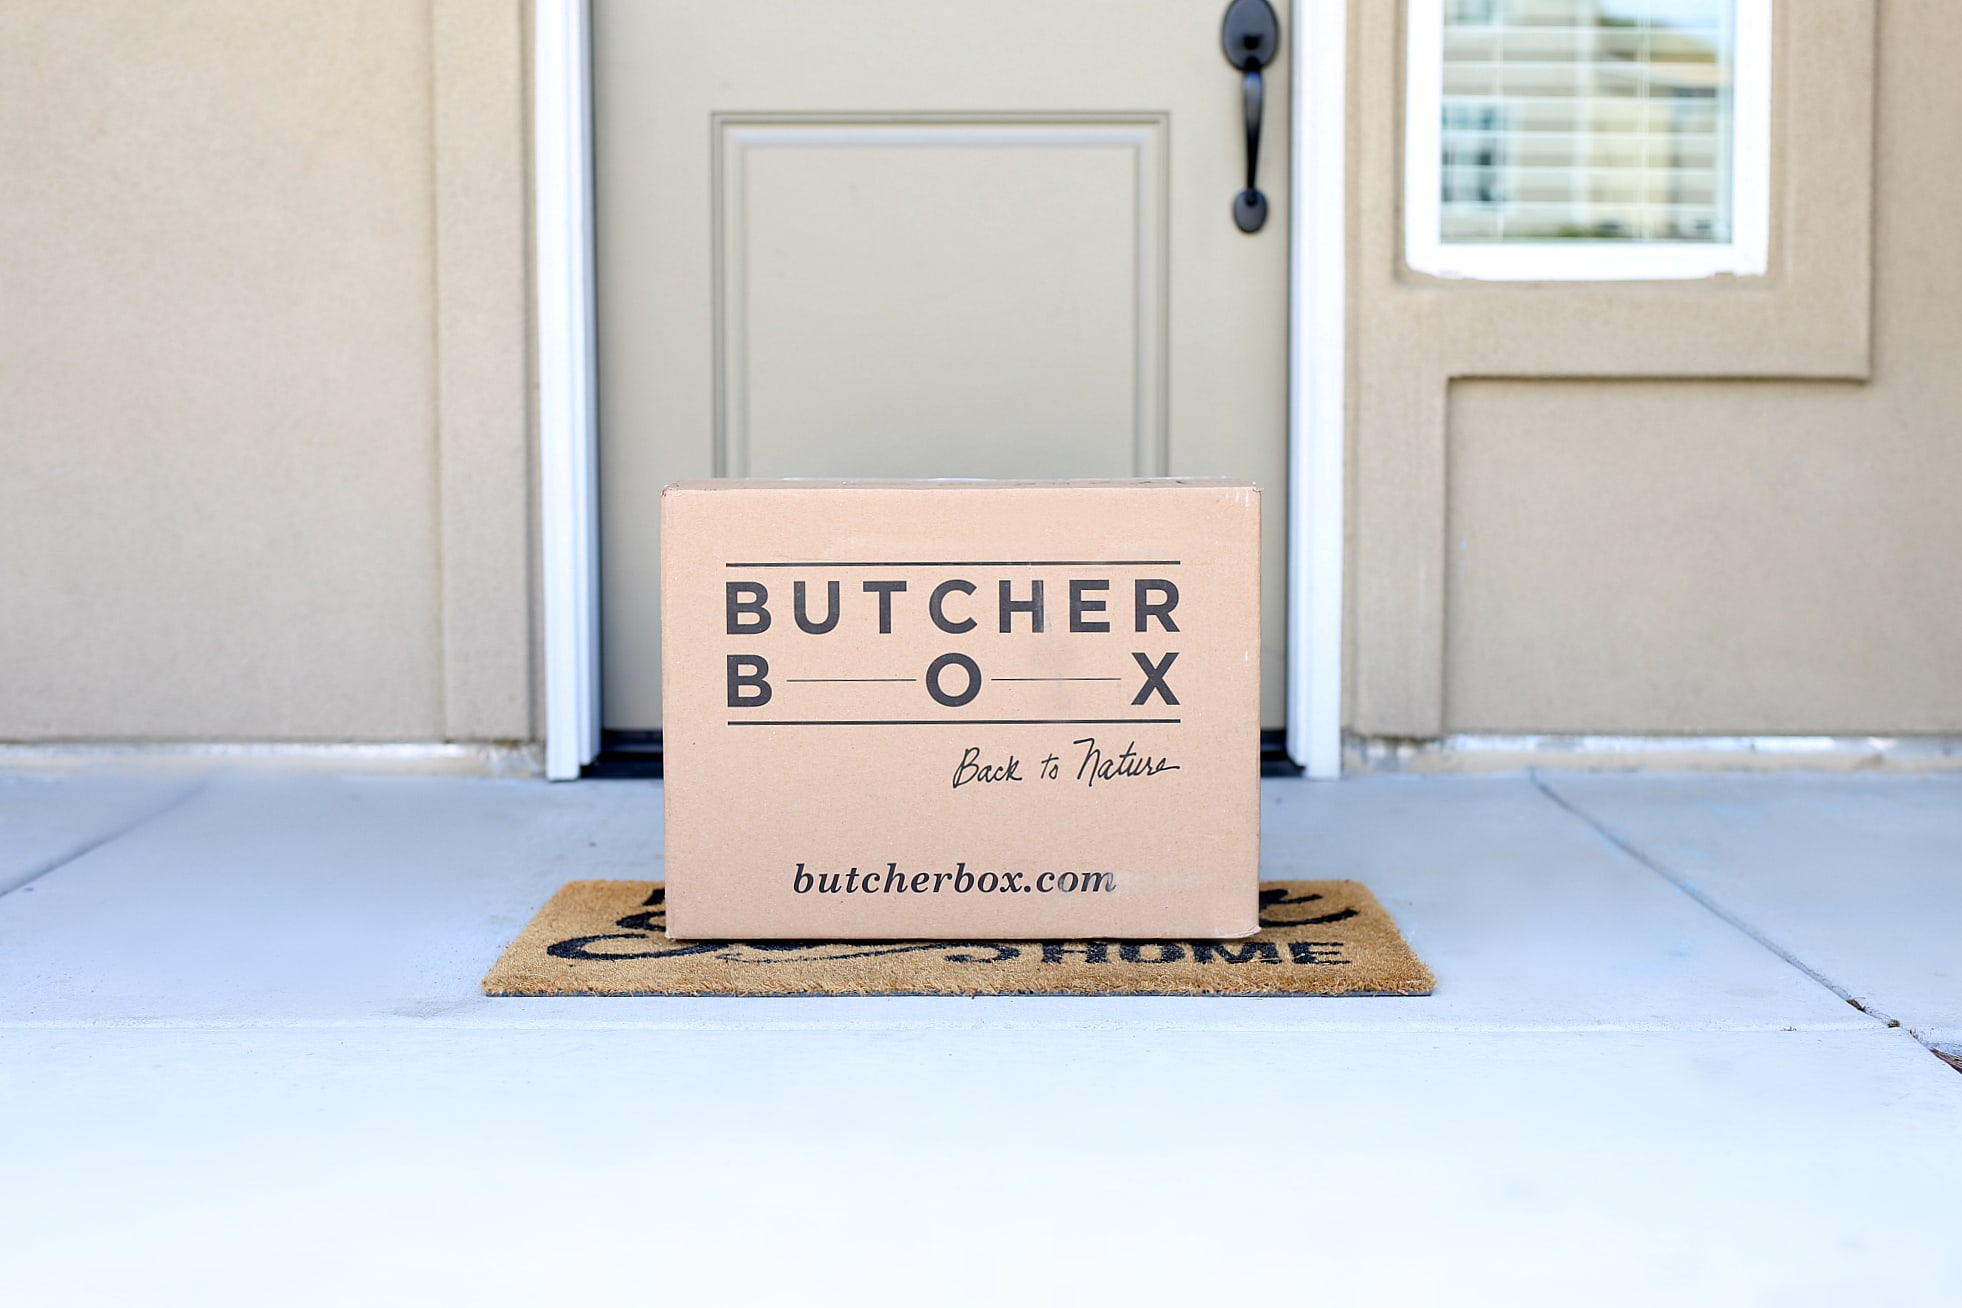 Heard of Butcher Box meat delivery service, and wondering if it's worth getting meat delivered? In this Butcher Box review learn why it is rated one of the top meat sources, plus all the pros, cons and discover if it's the right fit for you. #Butcherbox #affiliate #meatdelivery #organicmeats #review | Delightful Mom Food